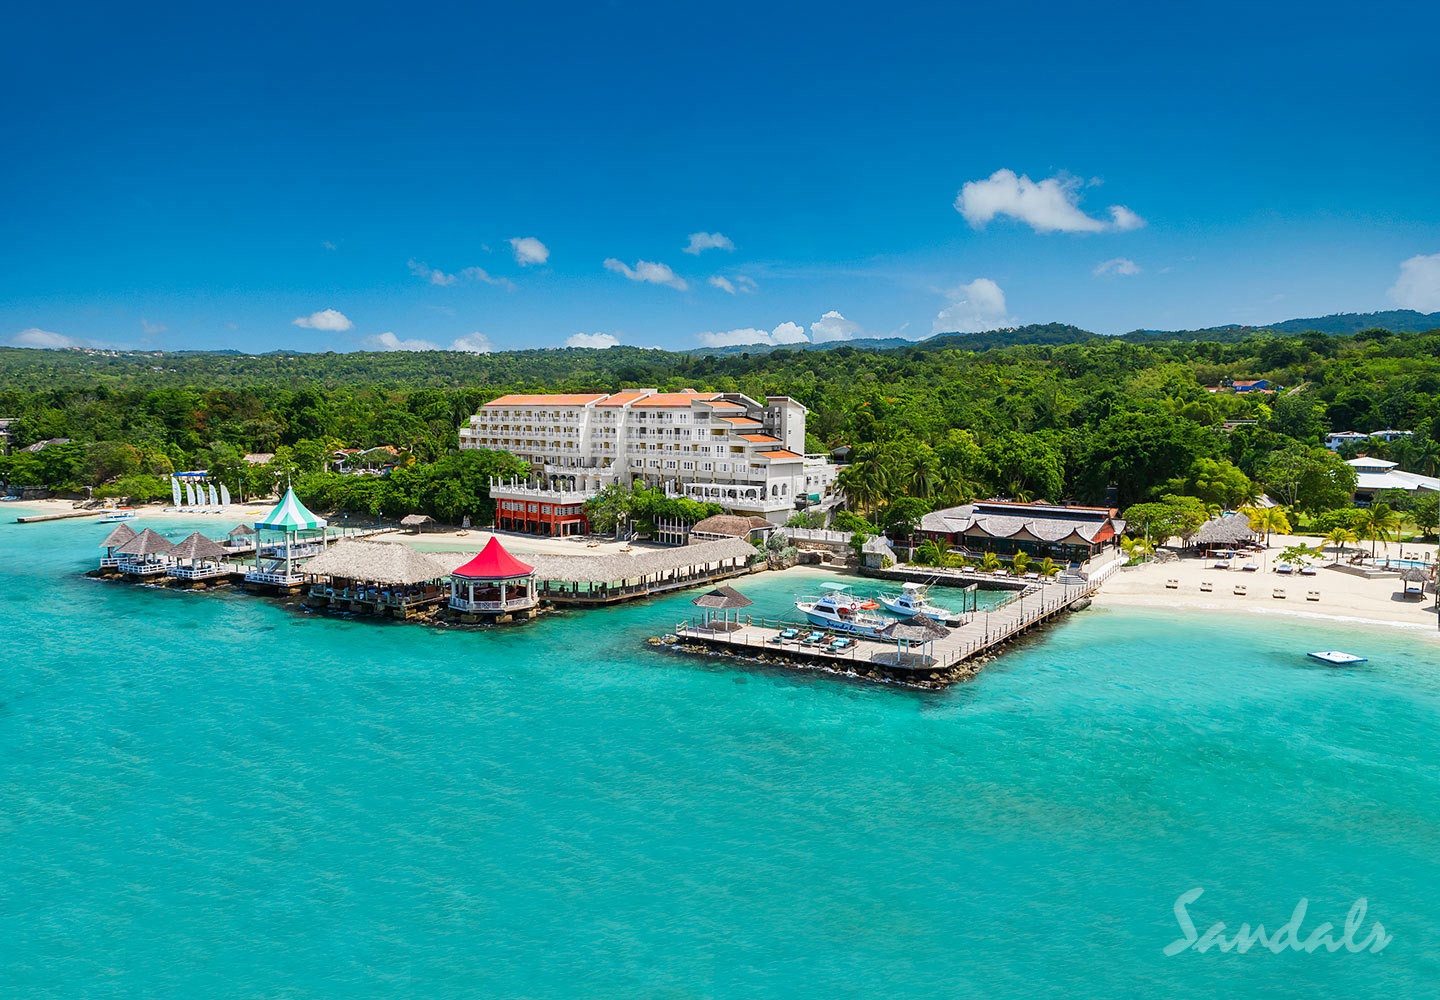 Travel Agency All-Inclusive Resort Sandals Ochi 074